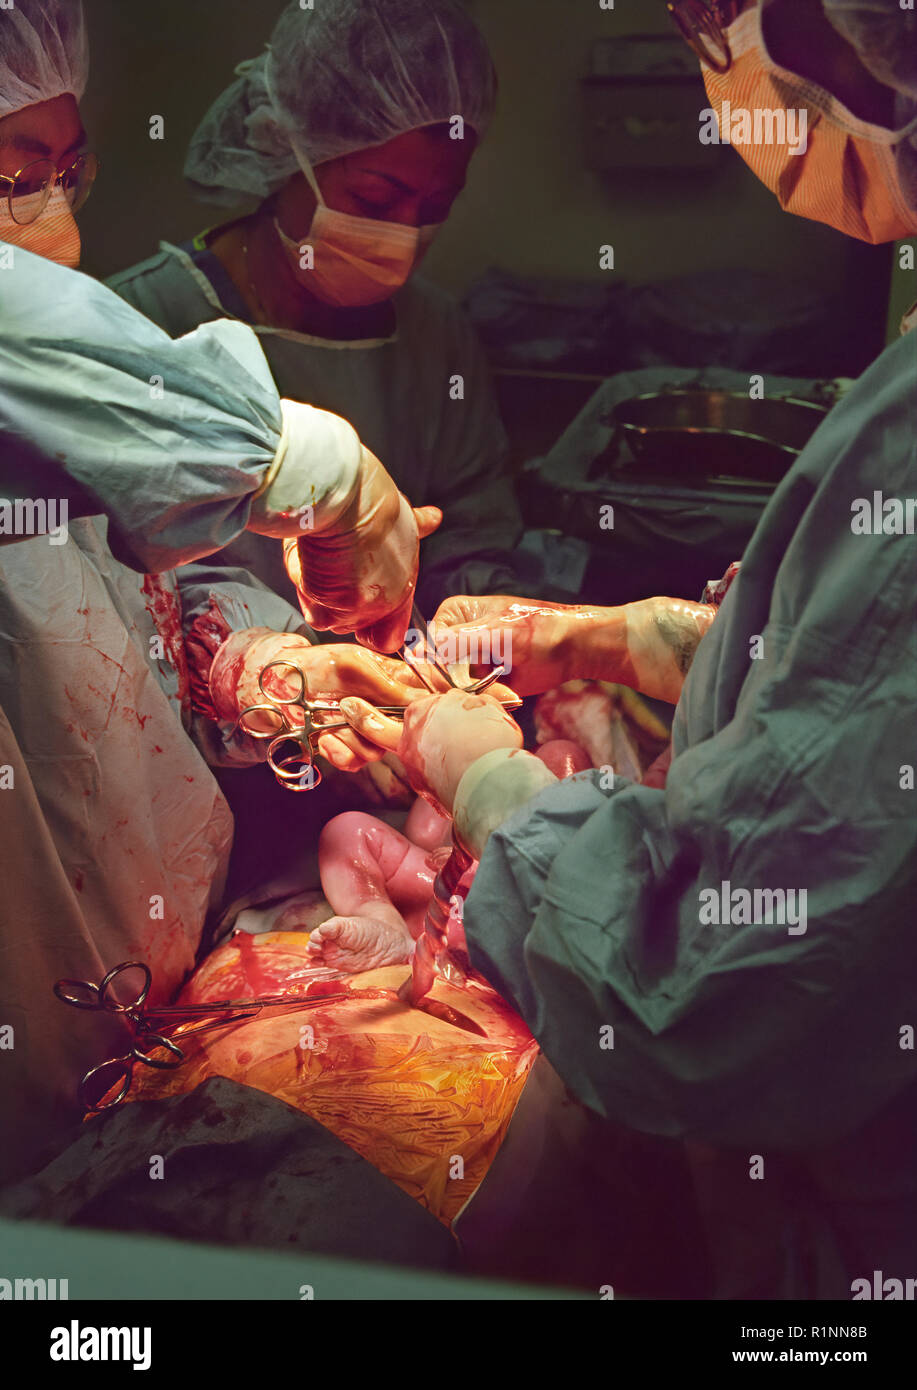 In the operating room during a cesarean section surgery